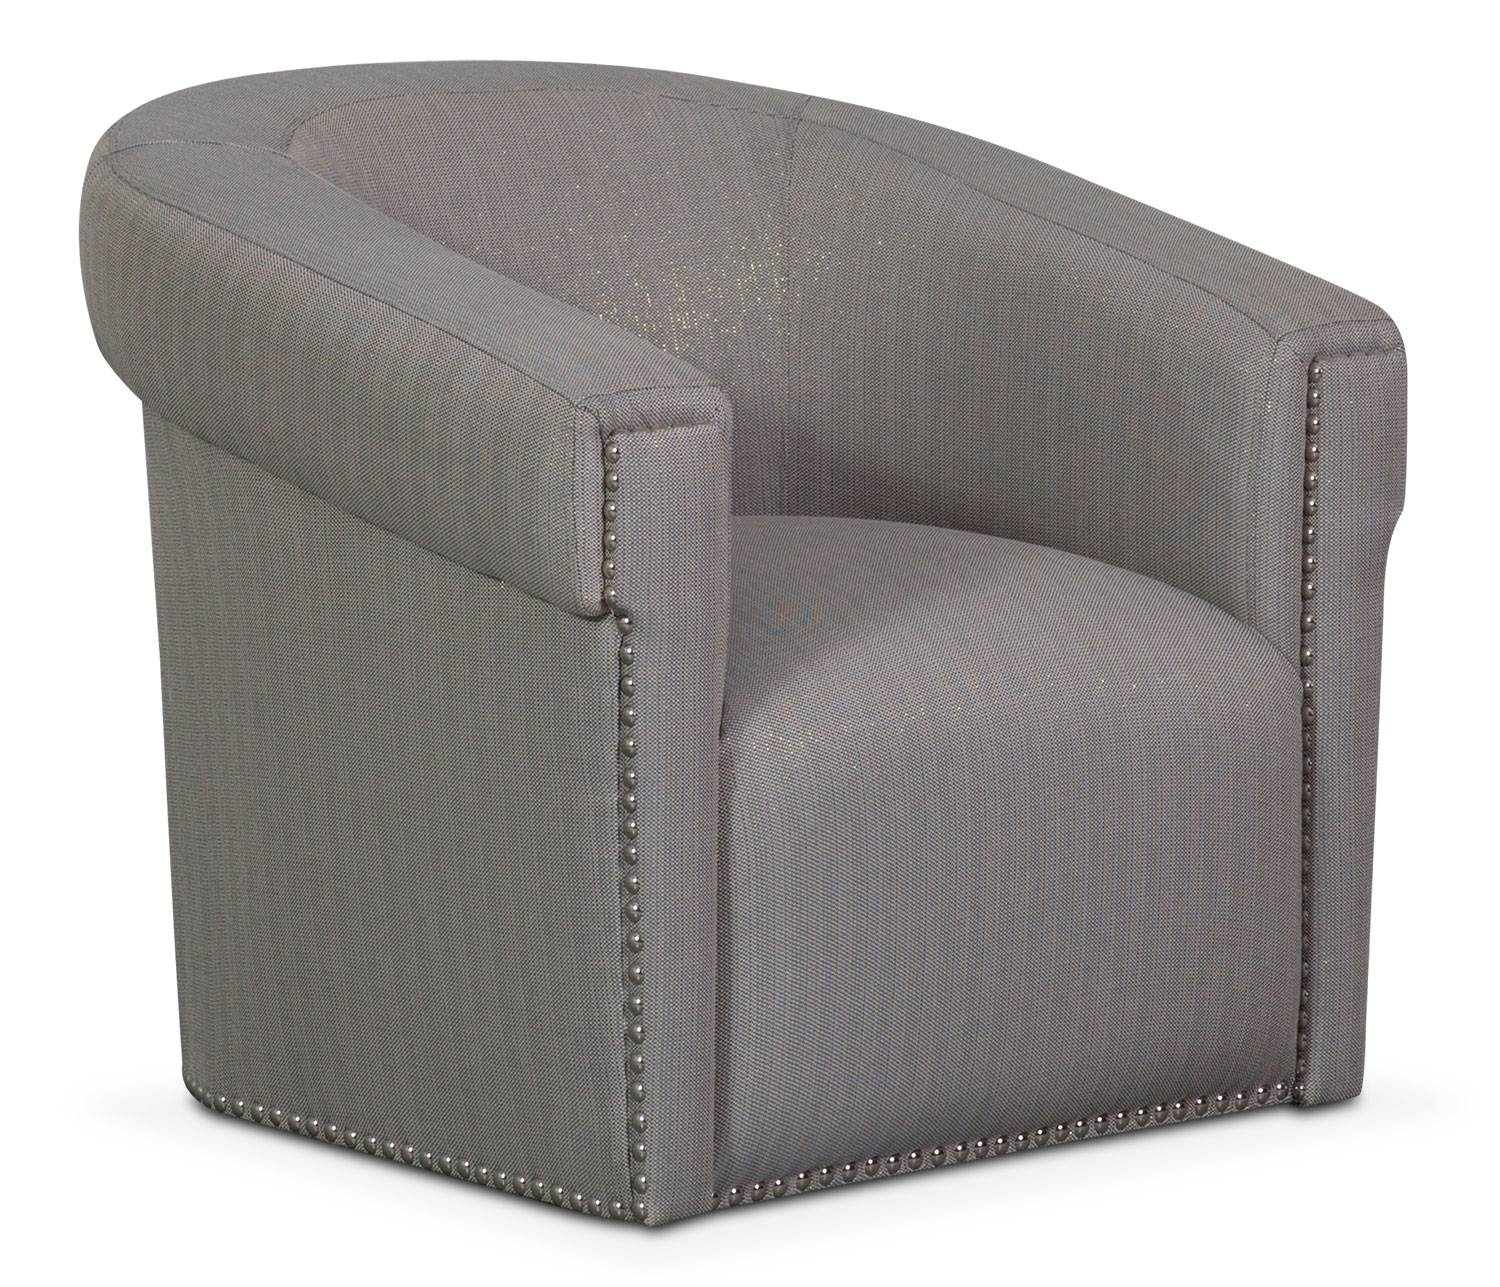 Couture Sofa, Chair And Swivel Chair Set - Black | Value City pertaining to Swivel Sofa Chairs (Image 12 of 30)